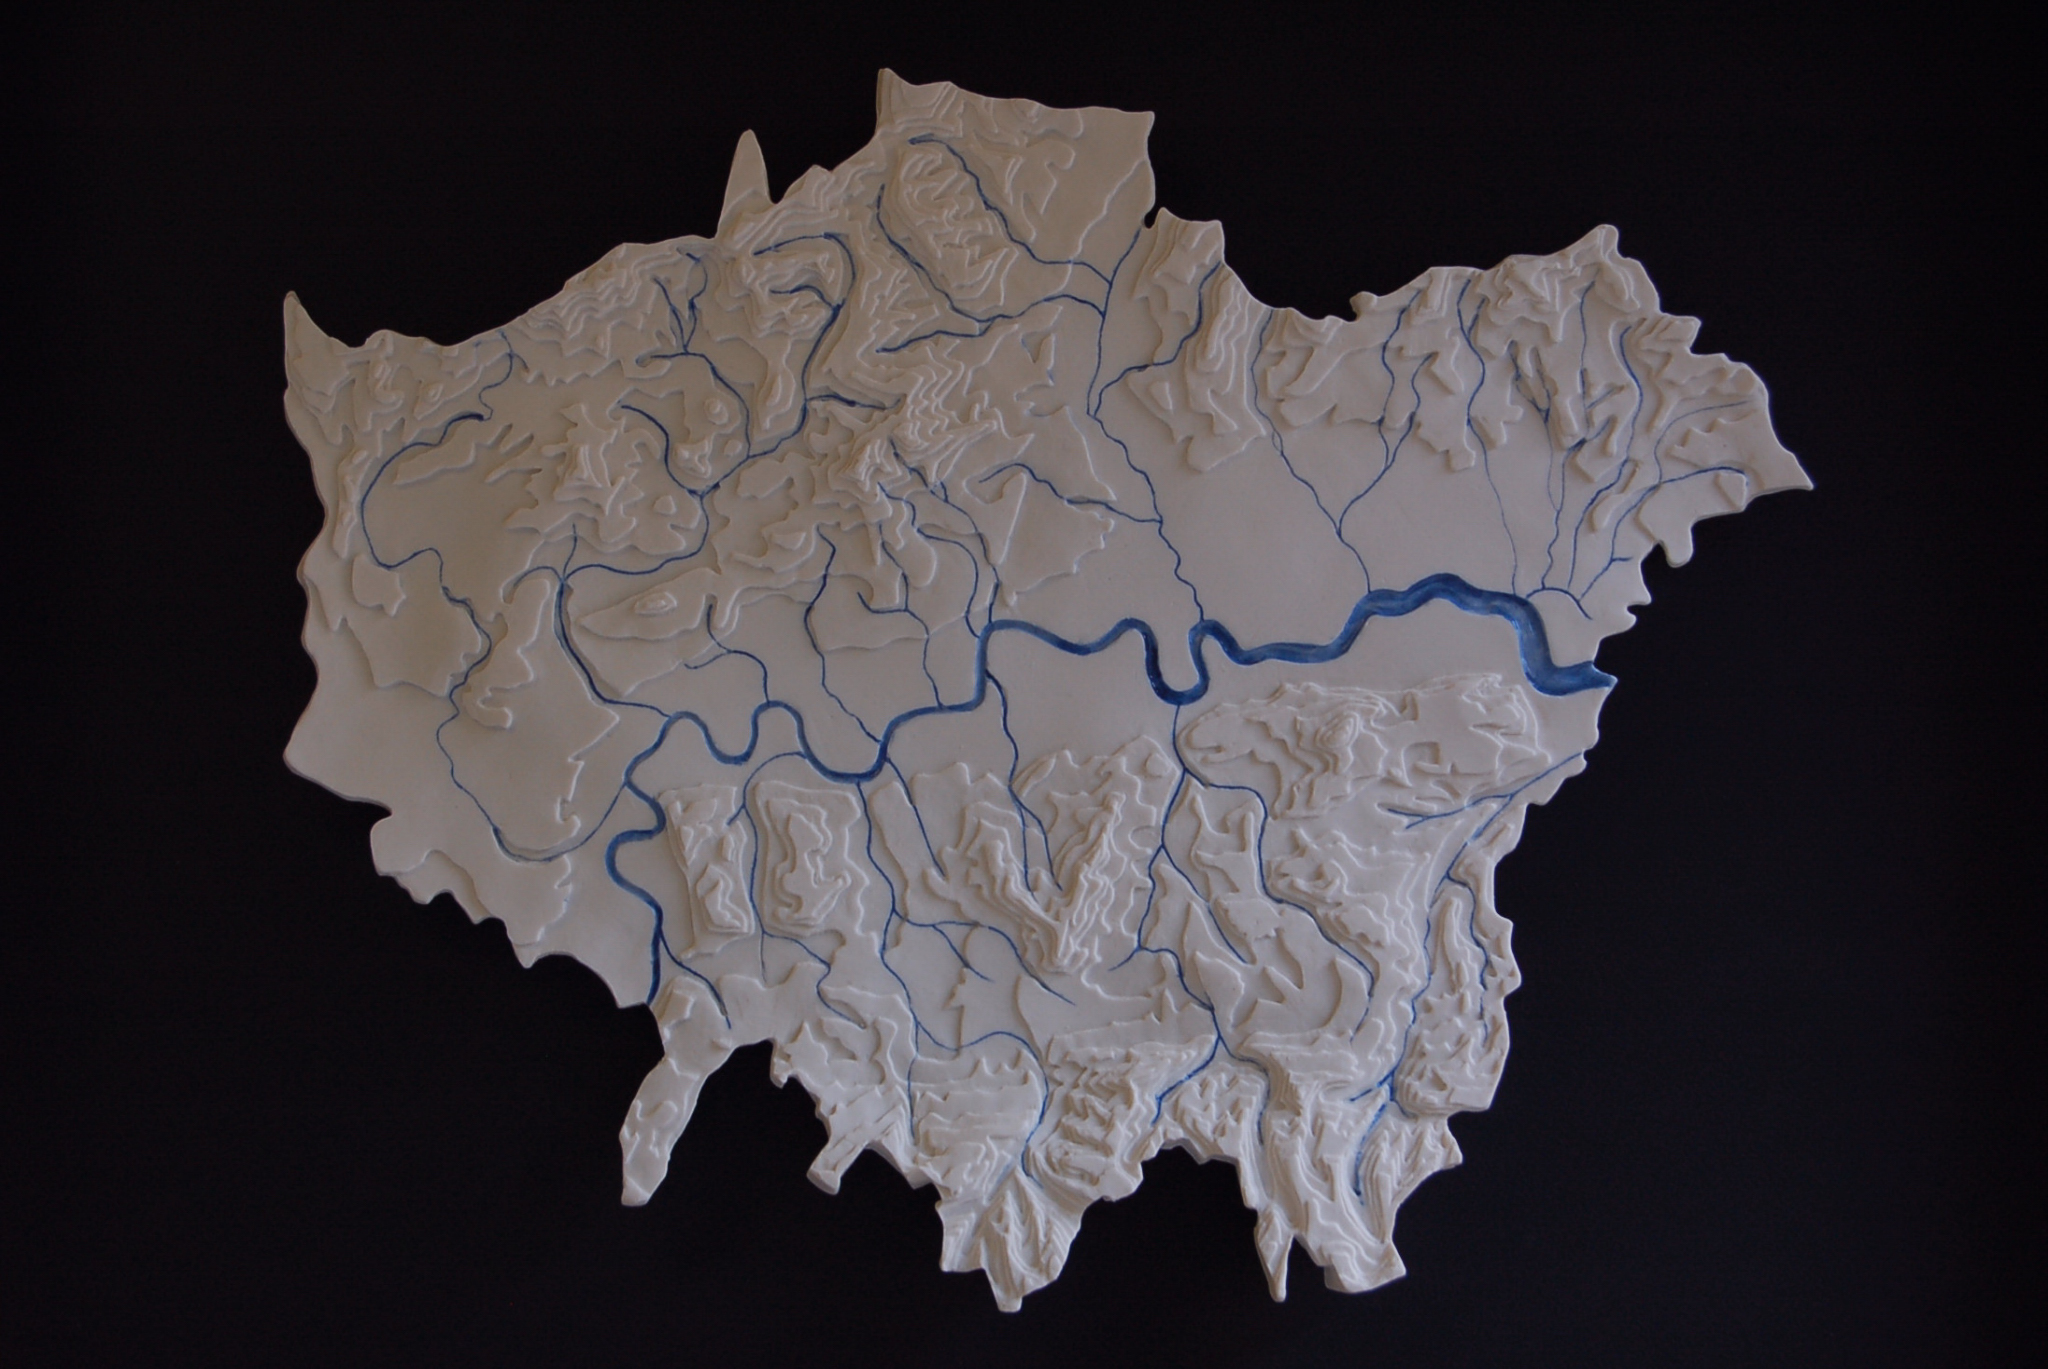 London Lost Rivers